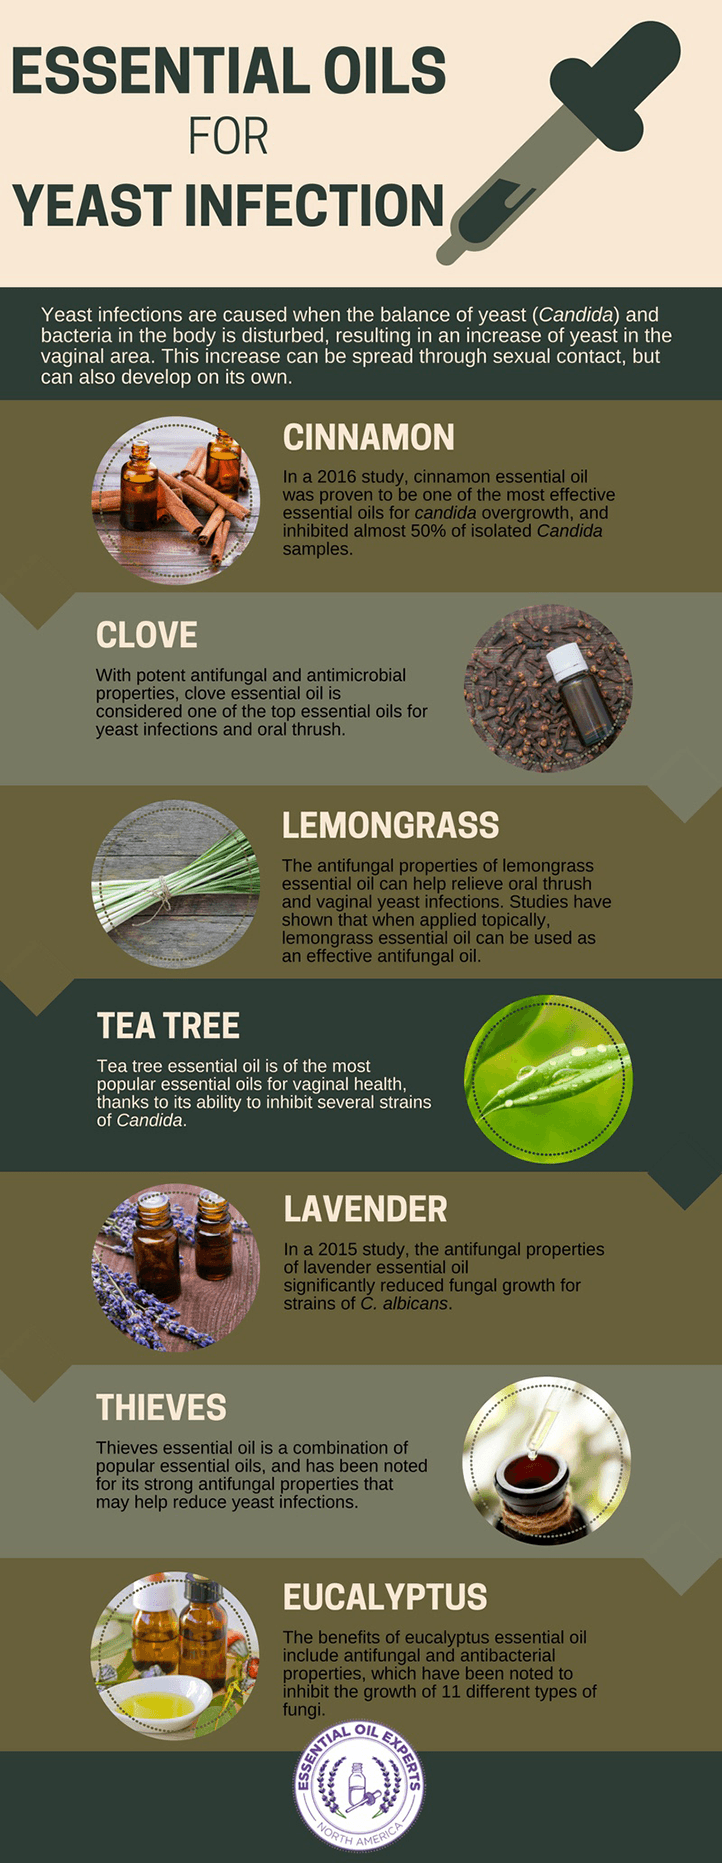 The top essential oils for yeast infections: does tea tree oil work for yeast infection symptoms and how to use lavender oil for yeast infection.